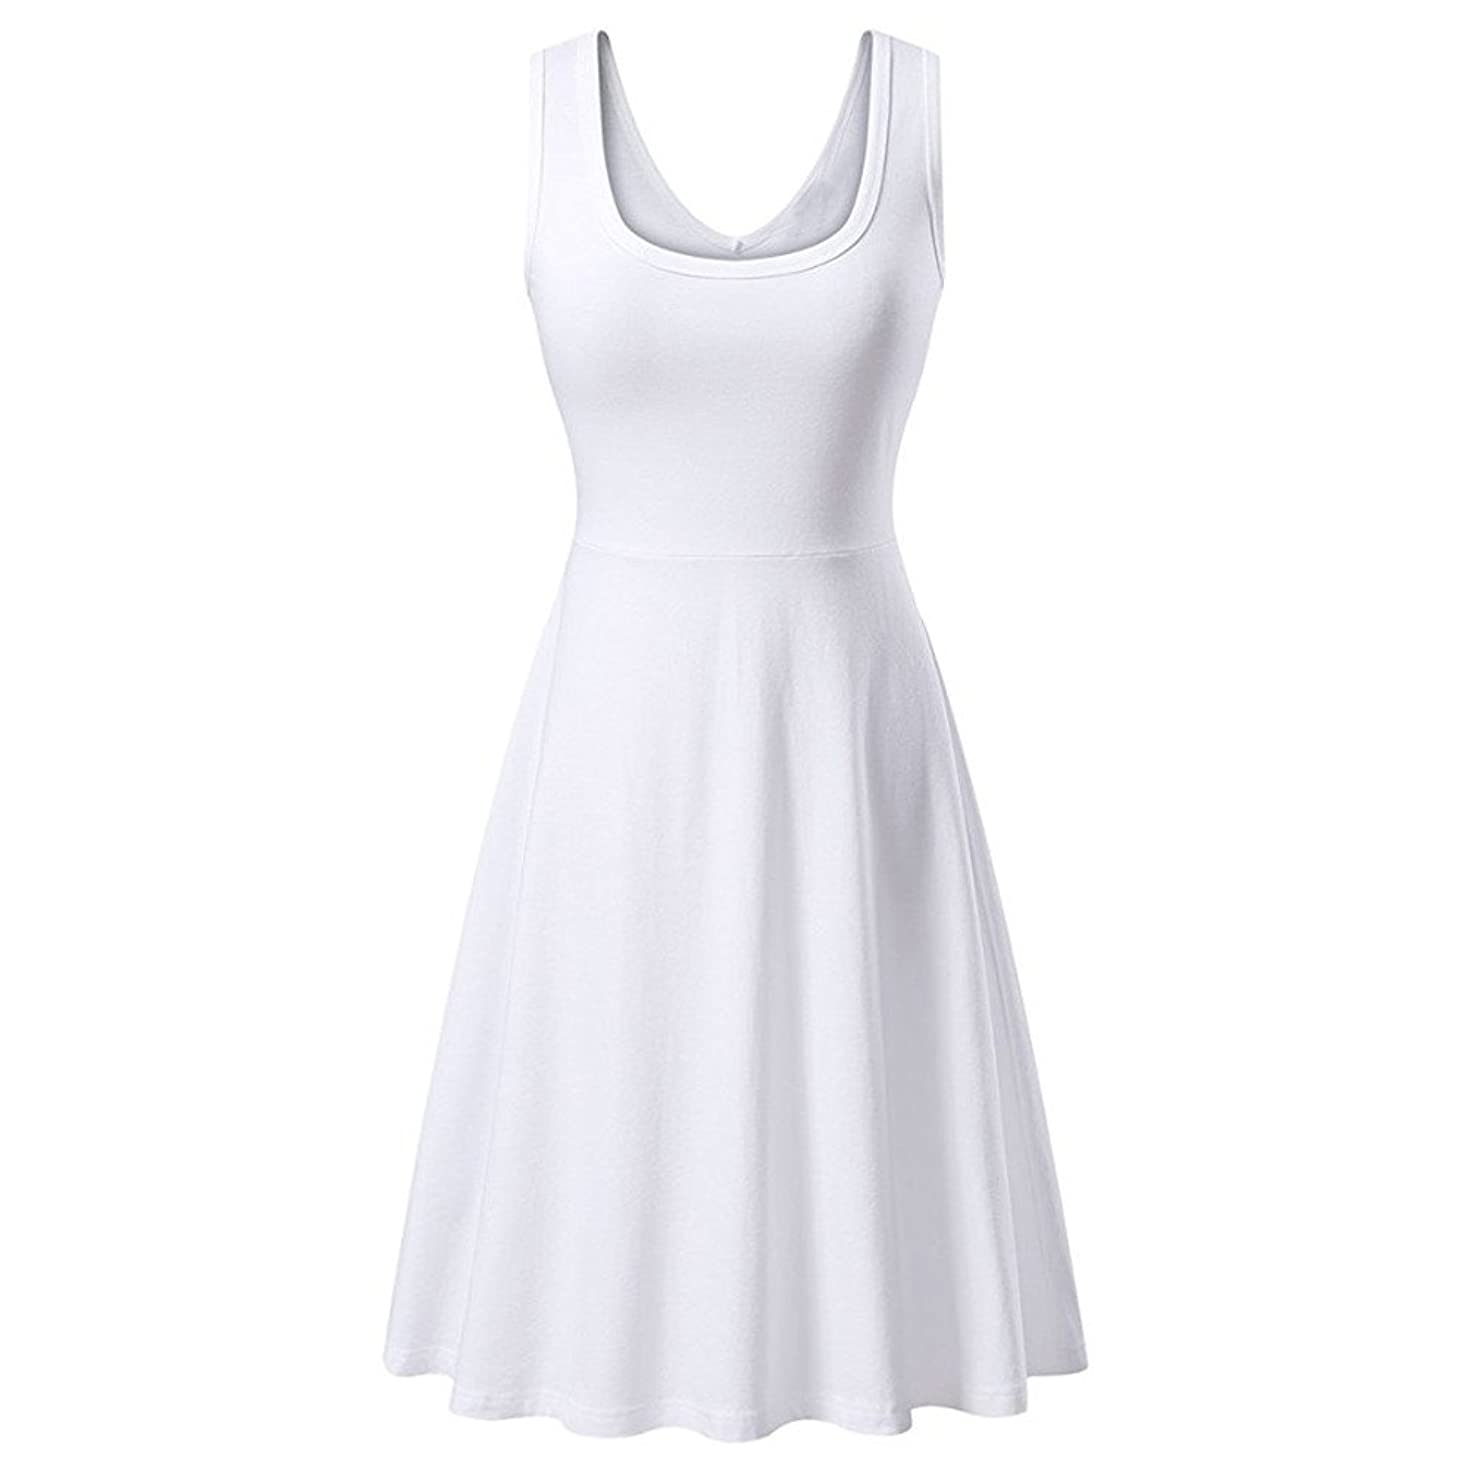 Dress for Women Sleeveless V Neck Solid Backless Pleated Swing Flowy Cocktail Dresses